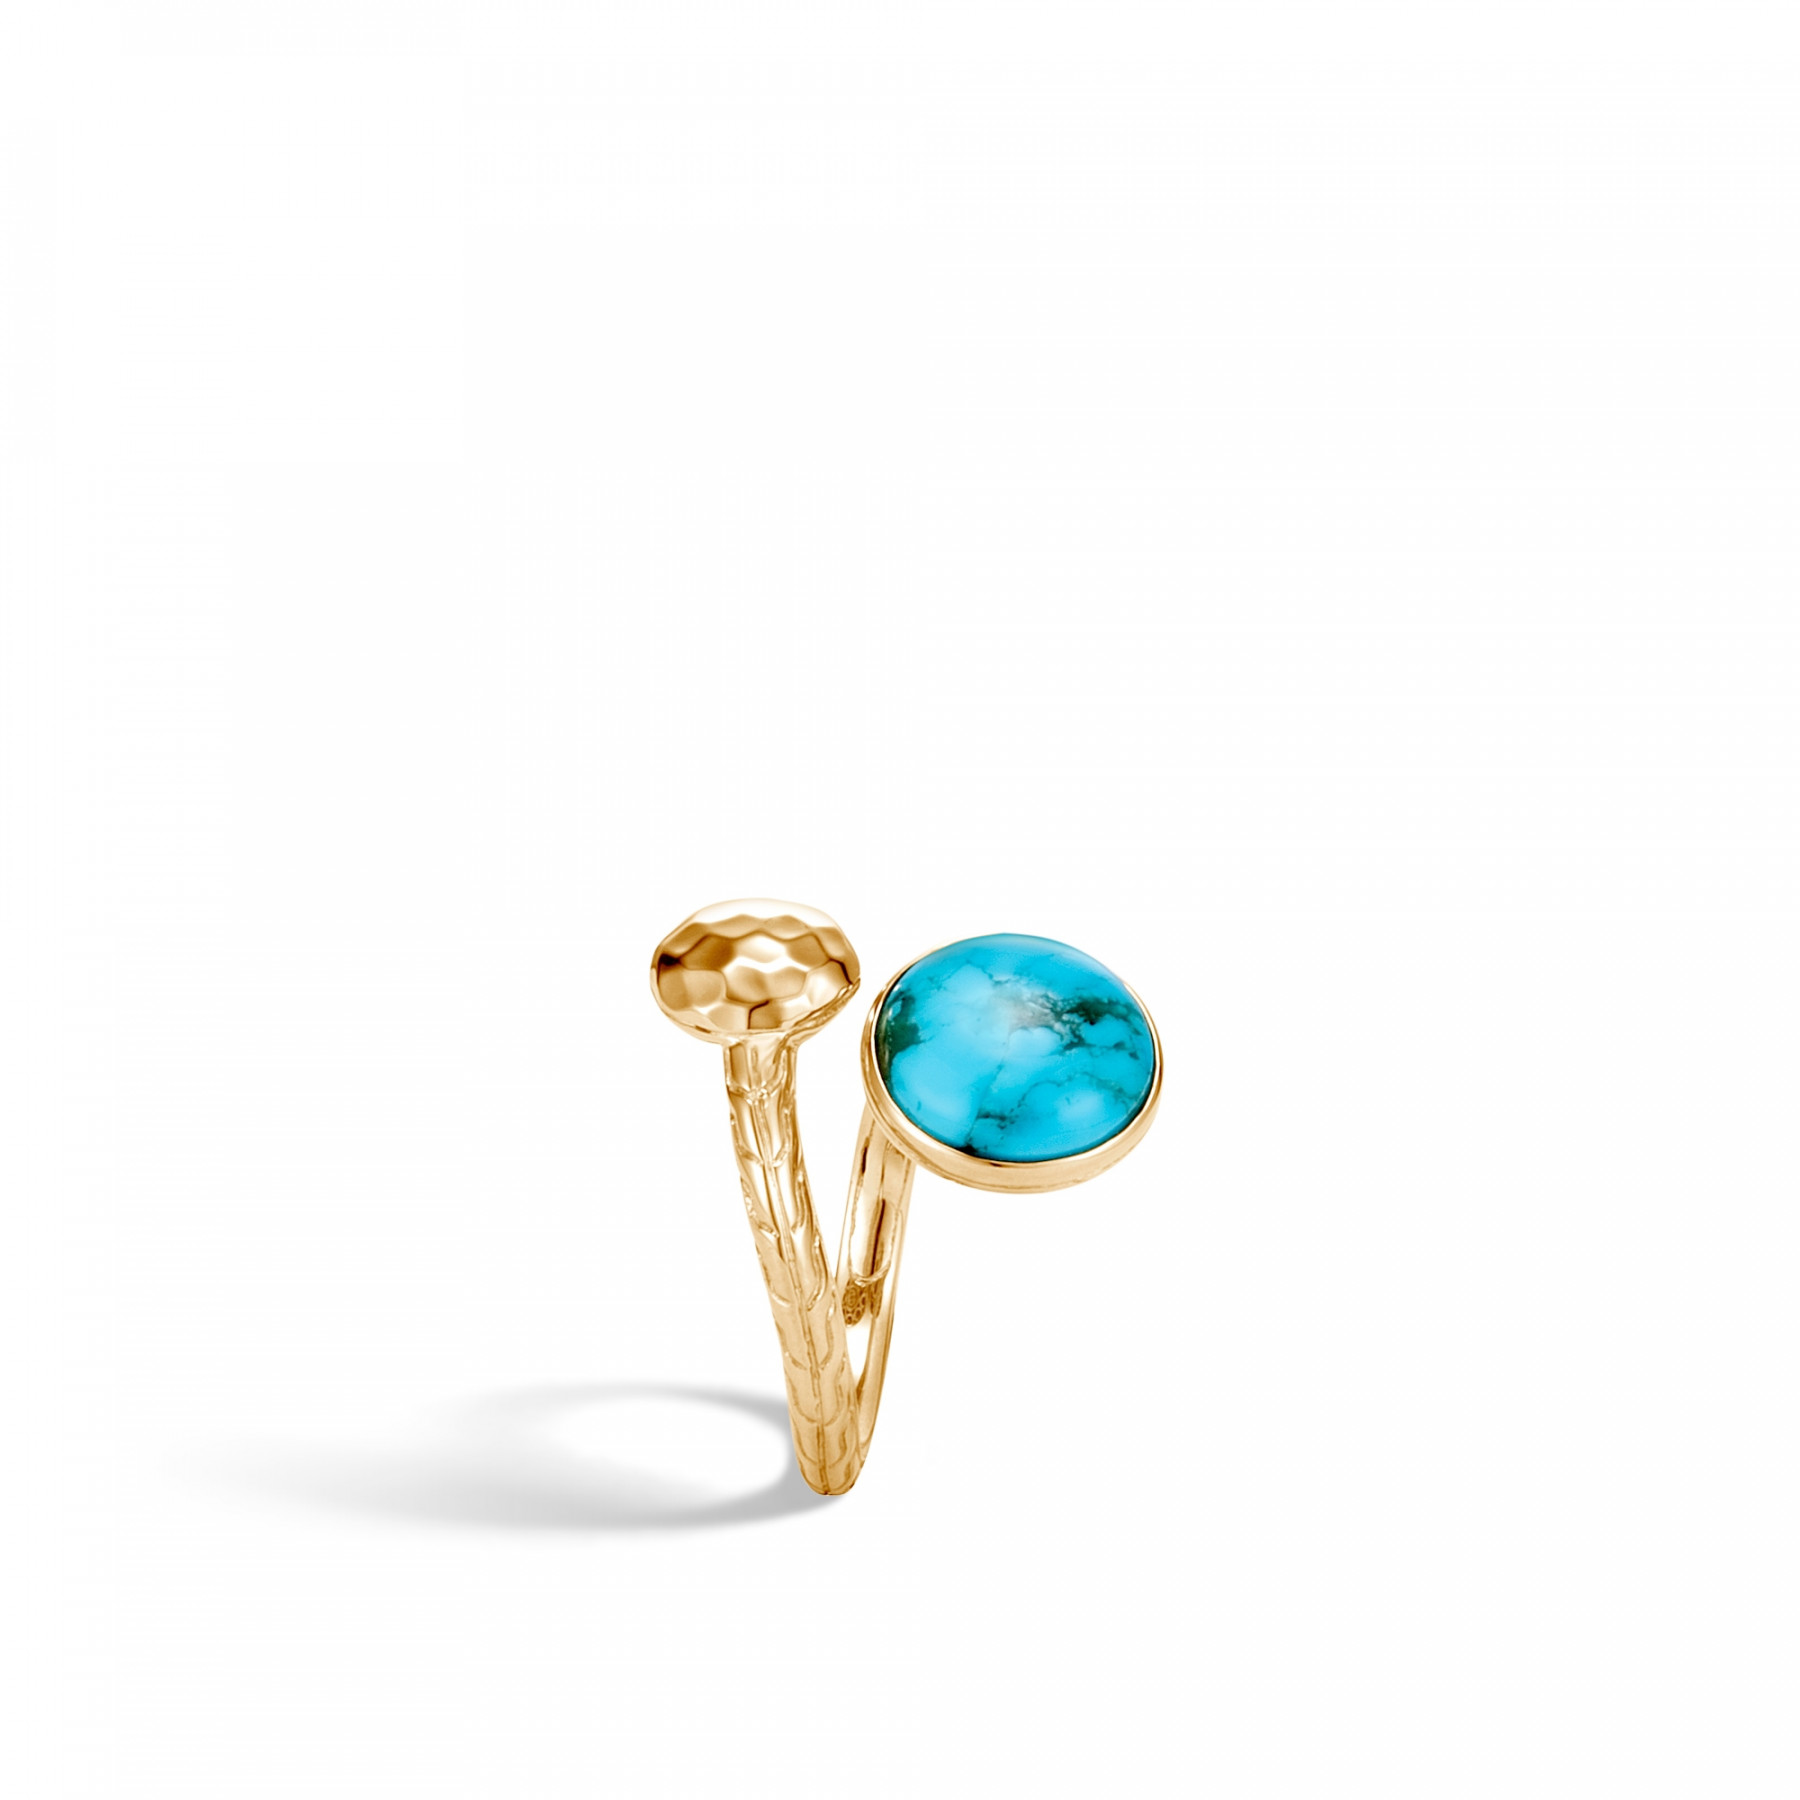 John Hardy Dot Bypass Turquoise Ring in 18k Yellow Gold side view